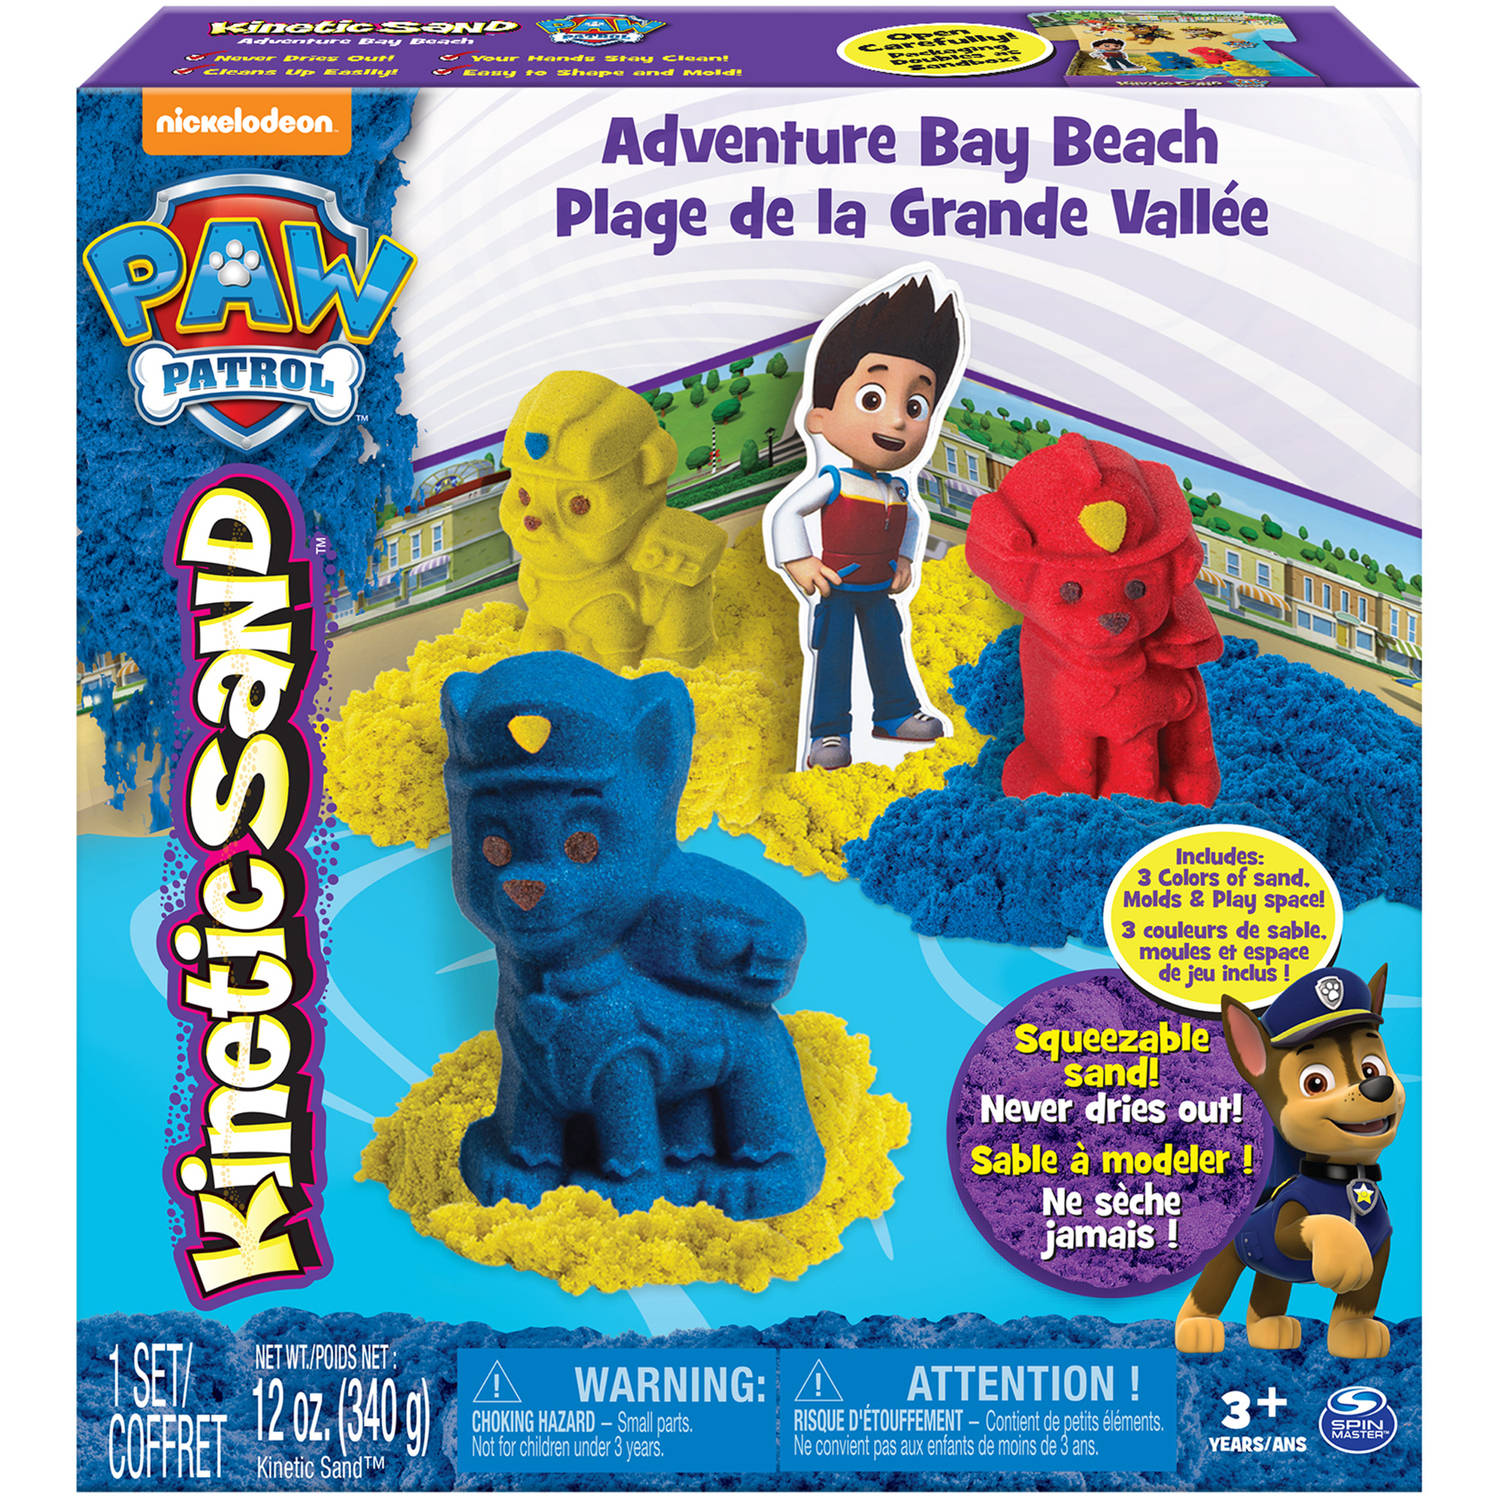 The One and Only Kinetic Sand Paw Patrol Adventure Bay Beach